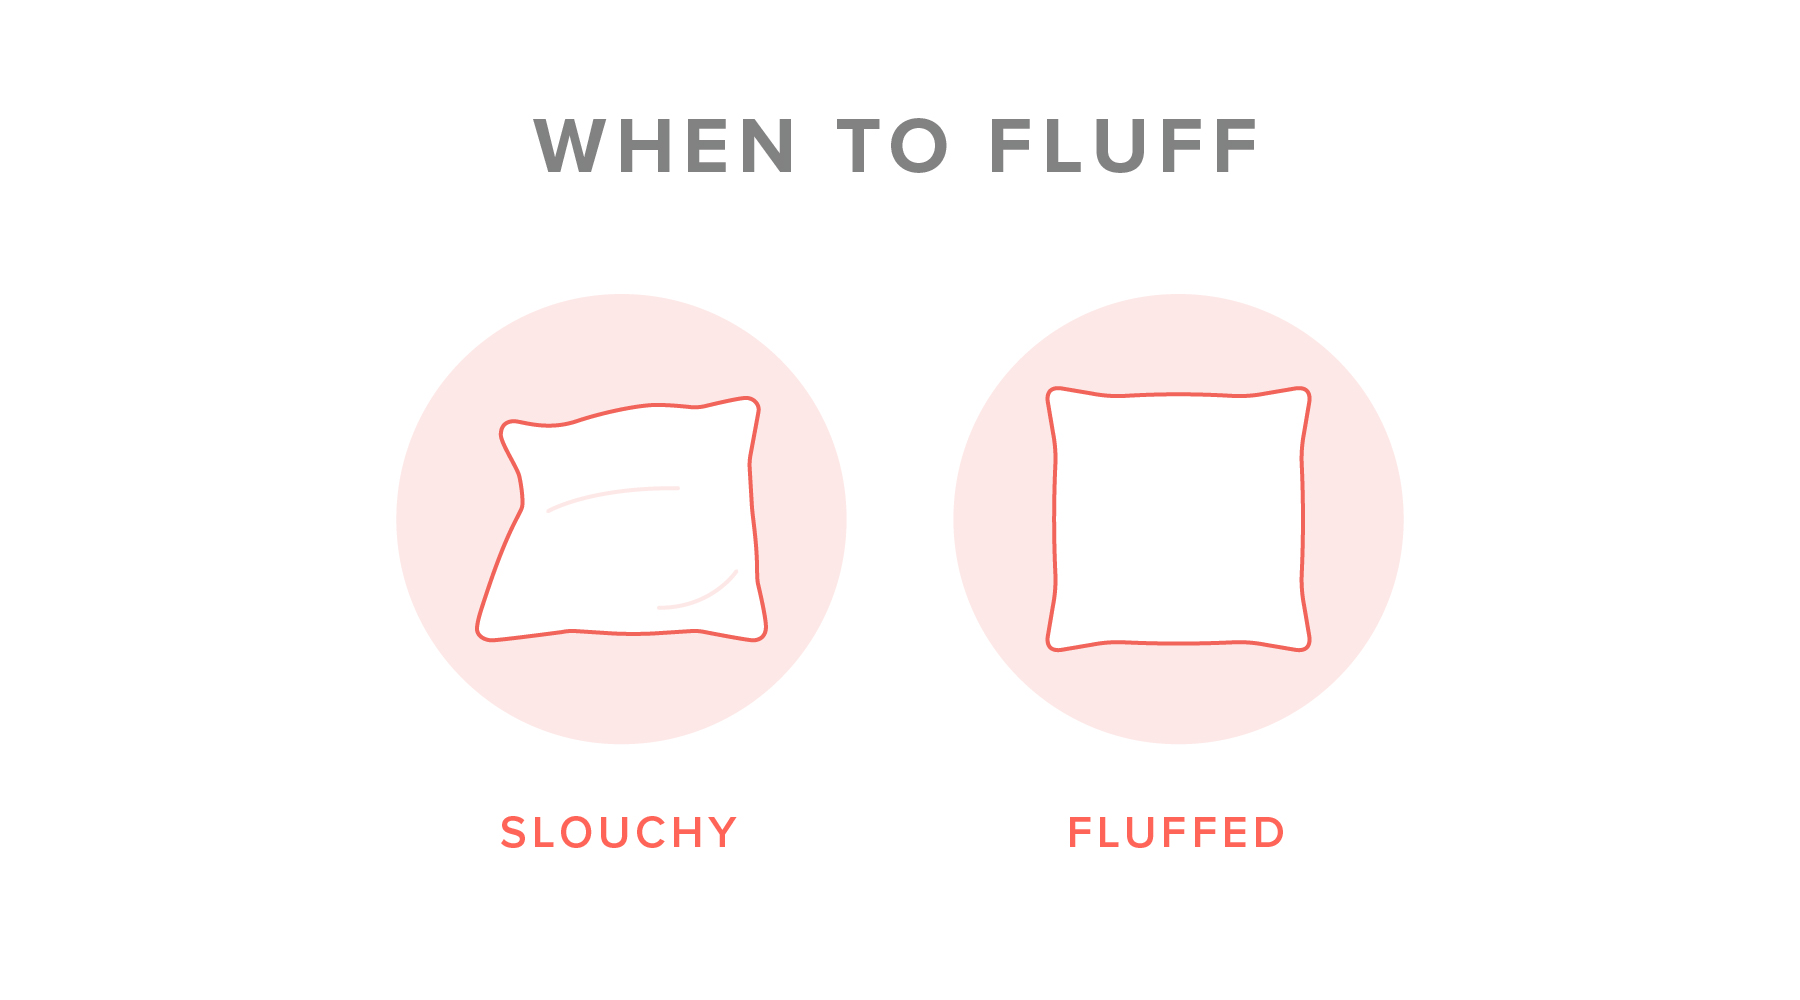 Illustration showing when to fluff pillows